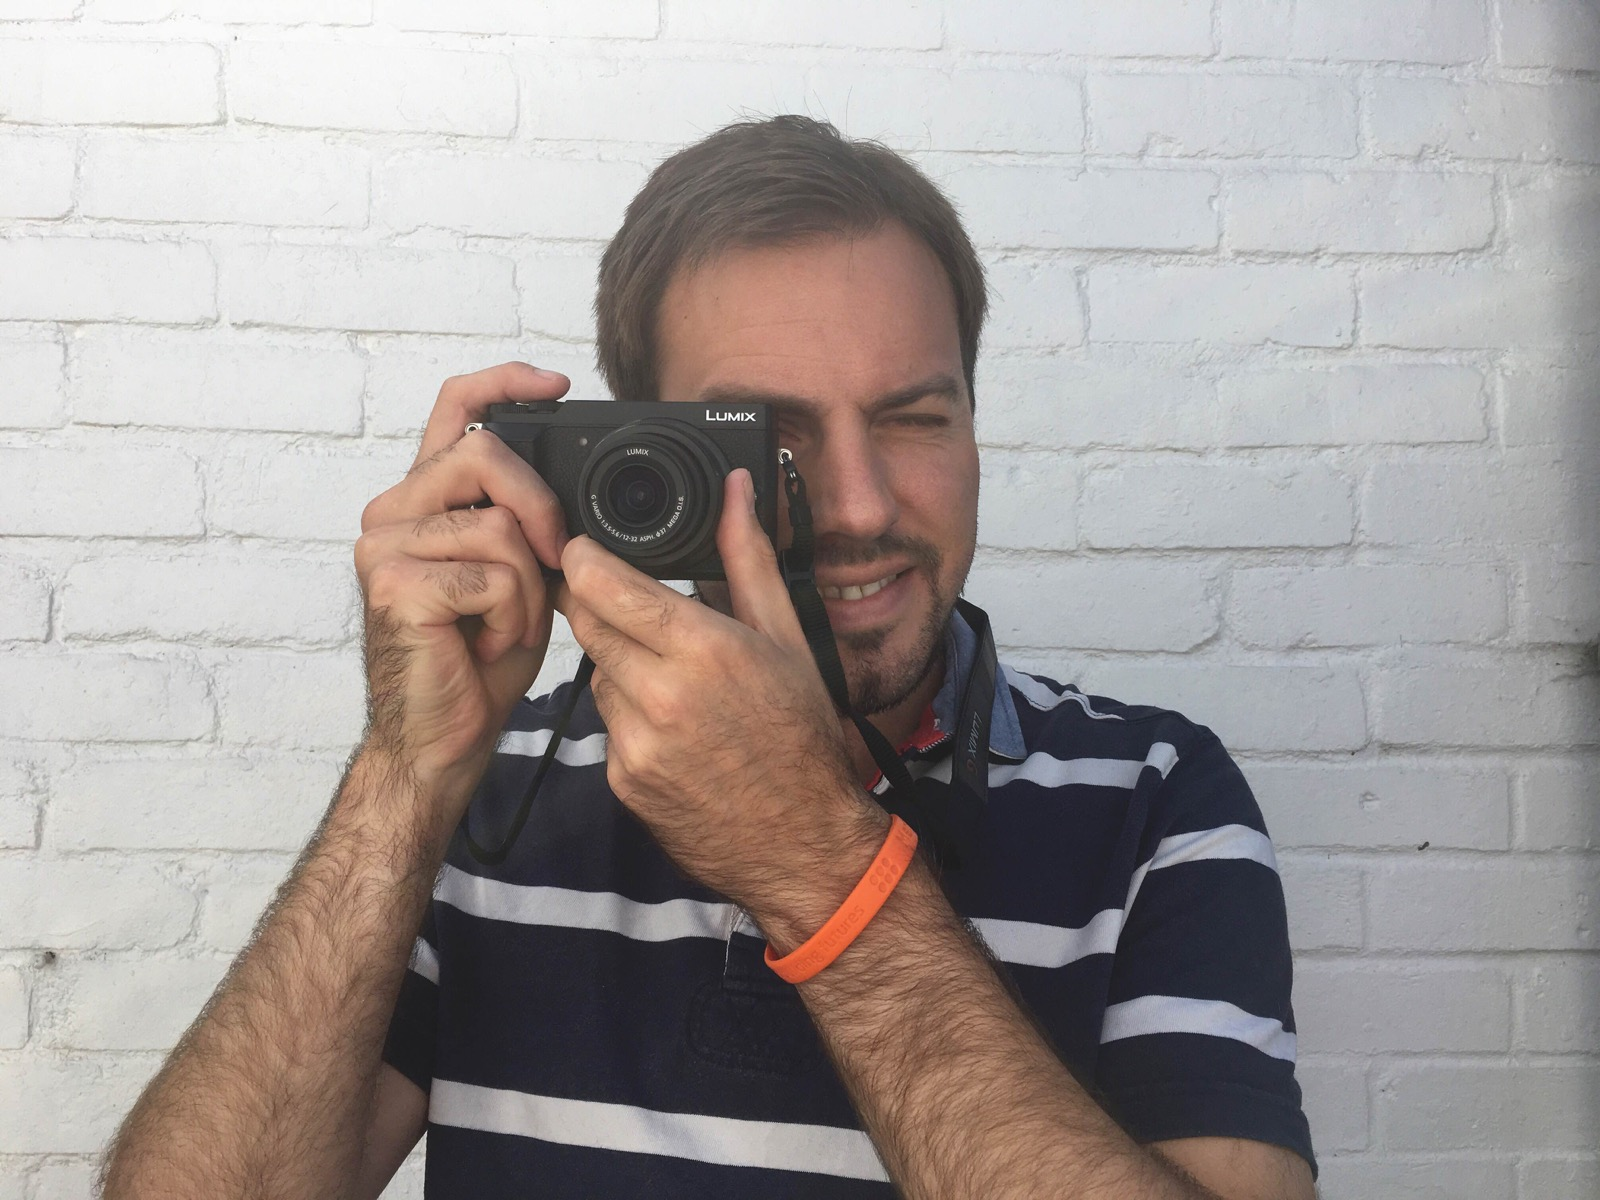 Simon with the Panasonic Lumix GX80